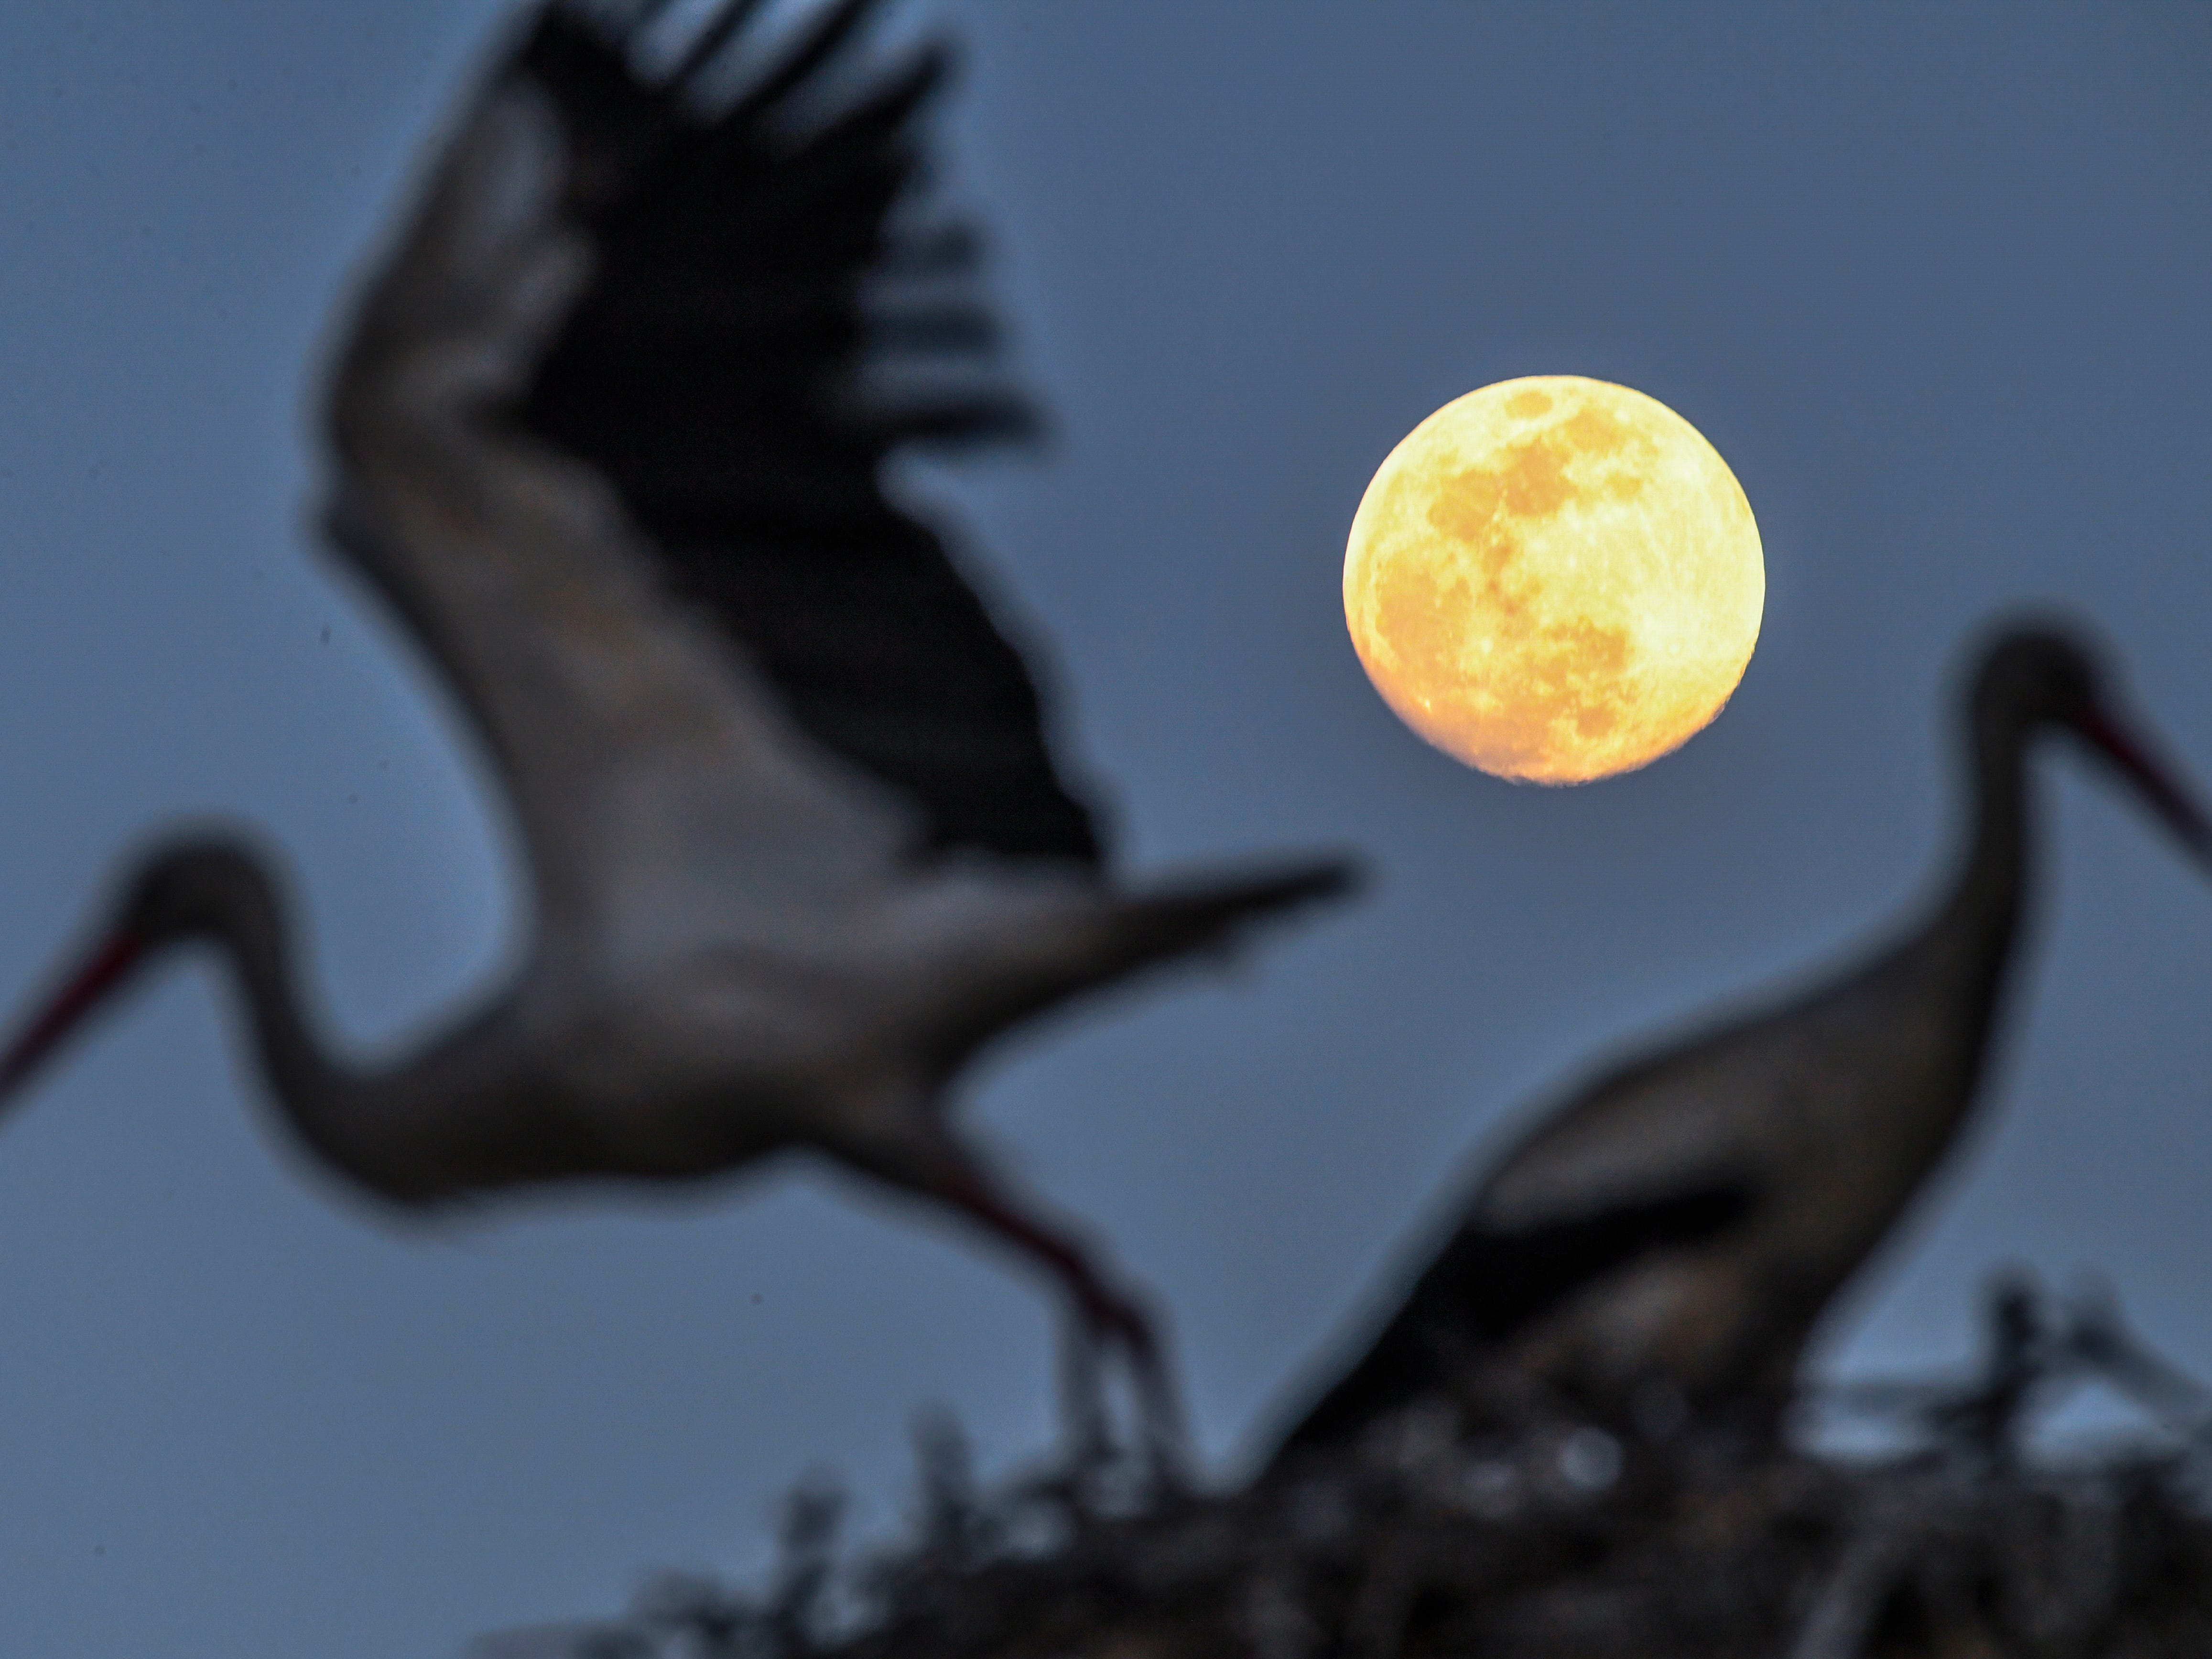 The first storks to arrive one day before the beginning of spring sit in their nest before the full moon in the village of Rzanicino near Skopje, Northern Macedonia, on March 19, 2019. From March 20 to 21, the first full moon of spring for the northern hemisphere and the first full moon of autumn for the southern hemisphere can be seen in the sky.